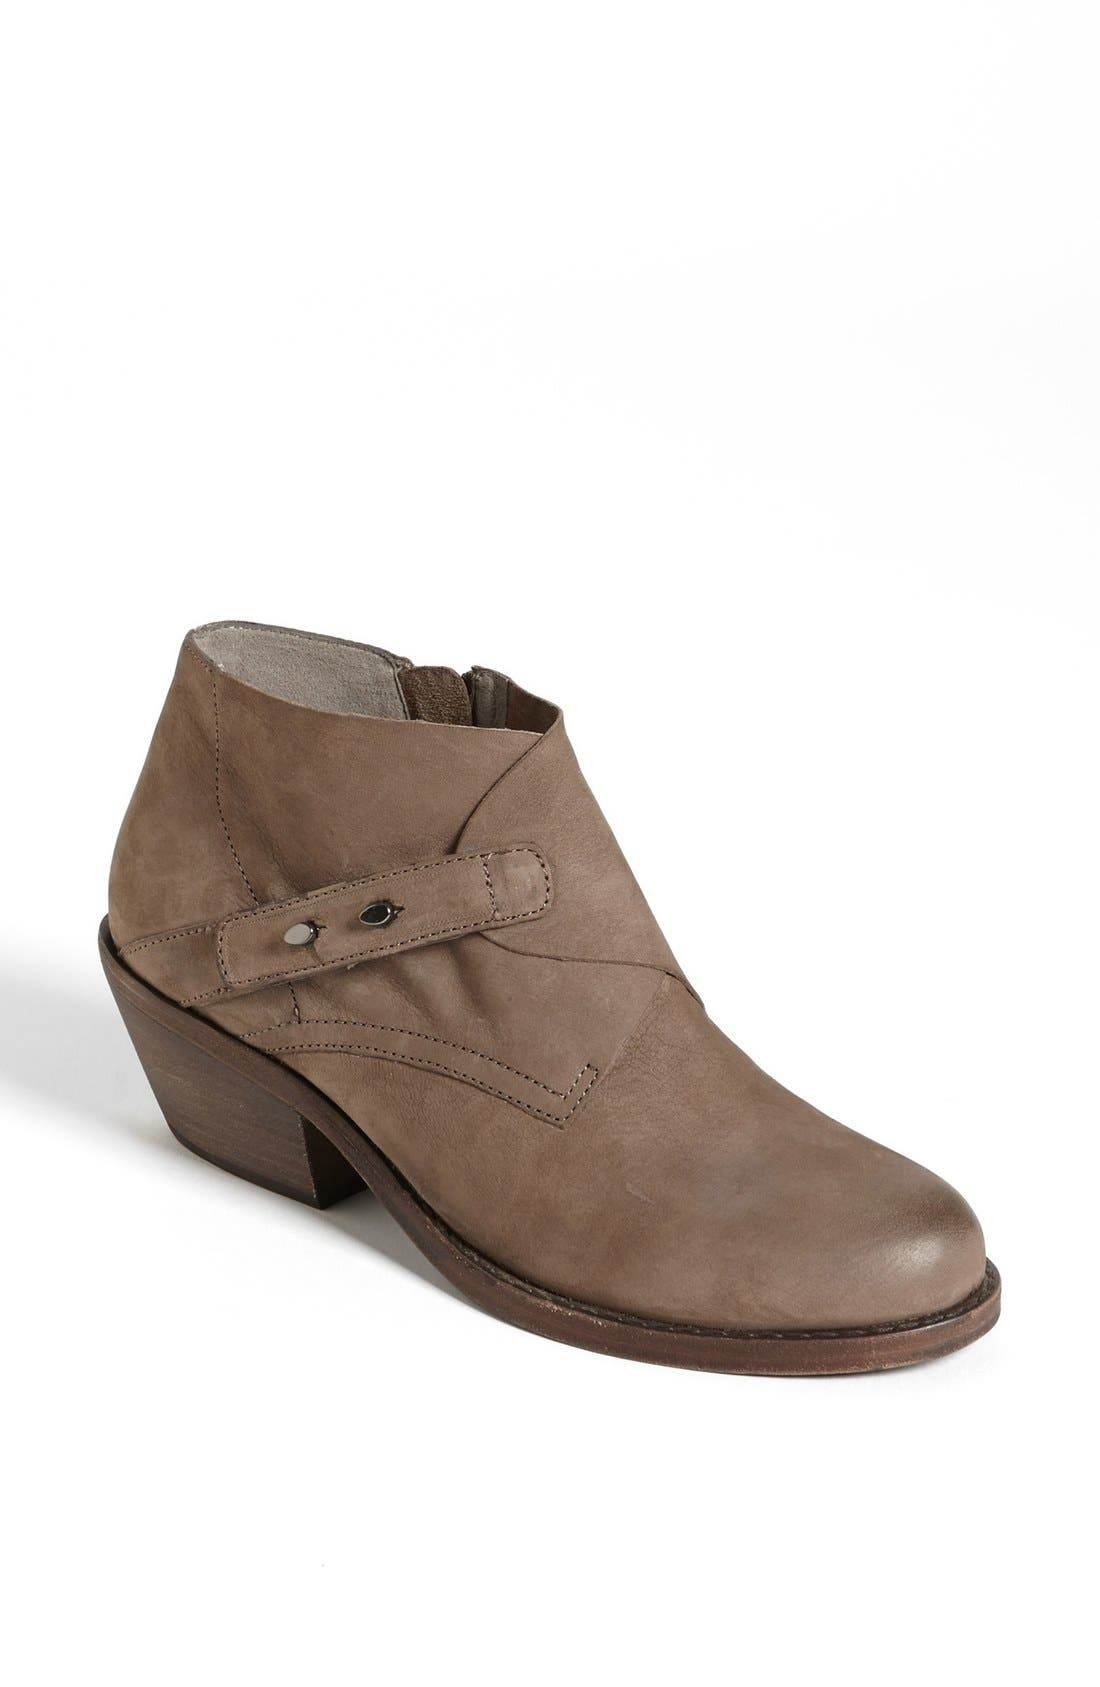 Alternate Image 1 Selected - Eileen Fisher Ankle Boot